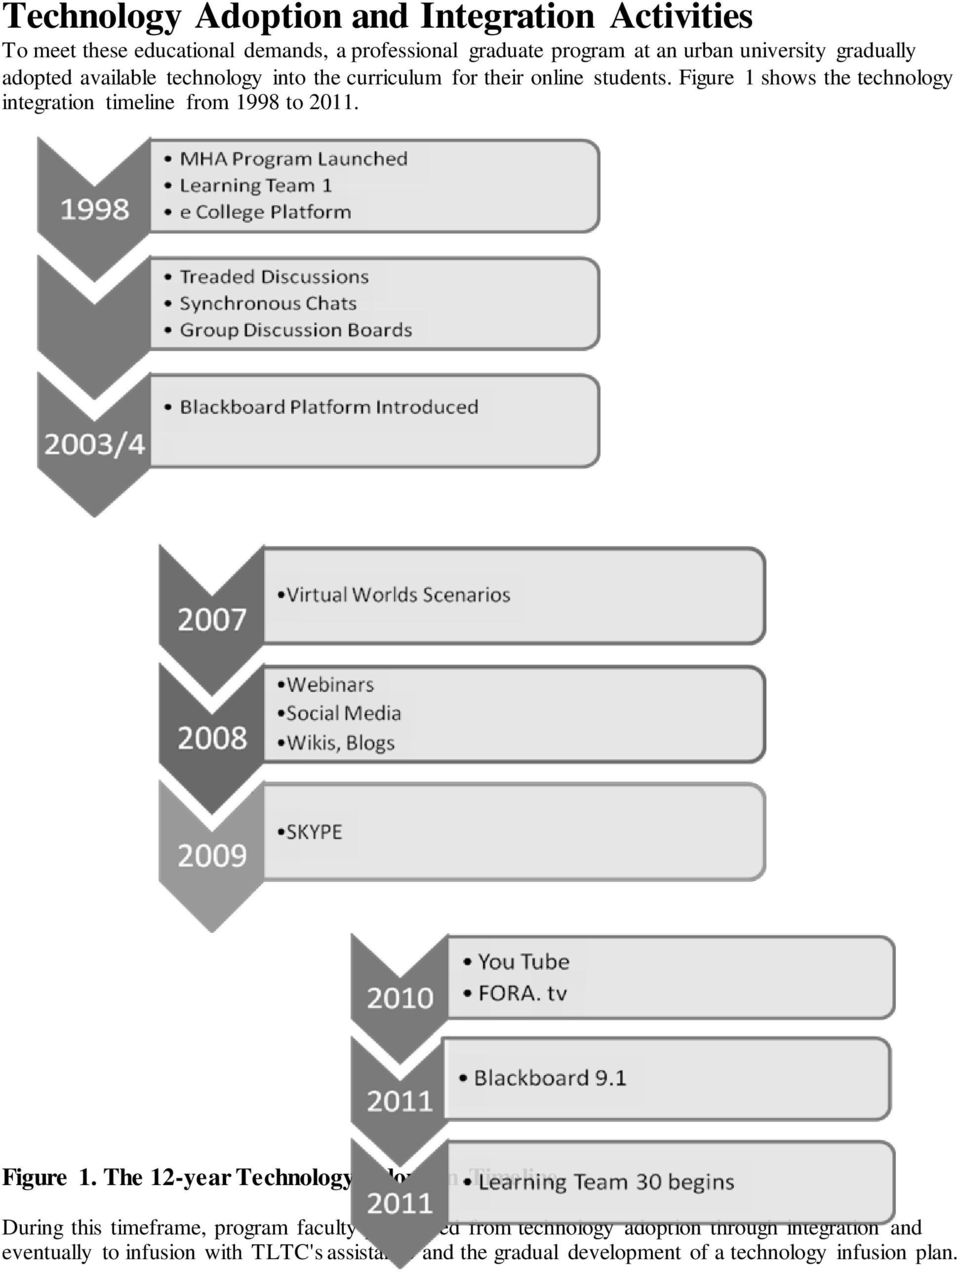 Figure 1 shows the technology integration timeline from 1998 to 2011. Figure 1.